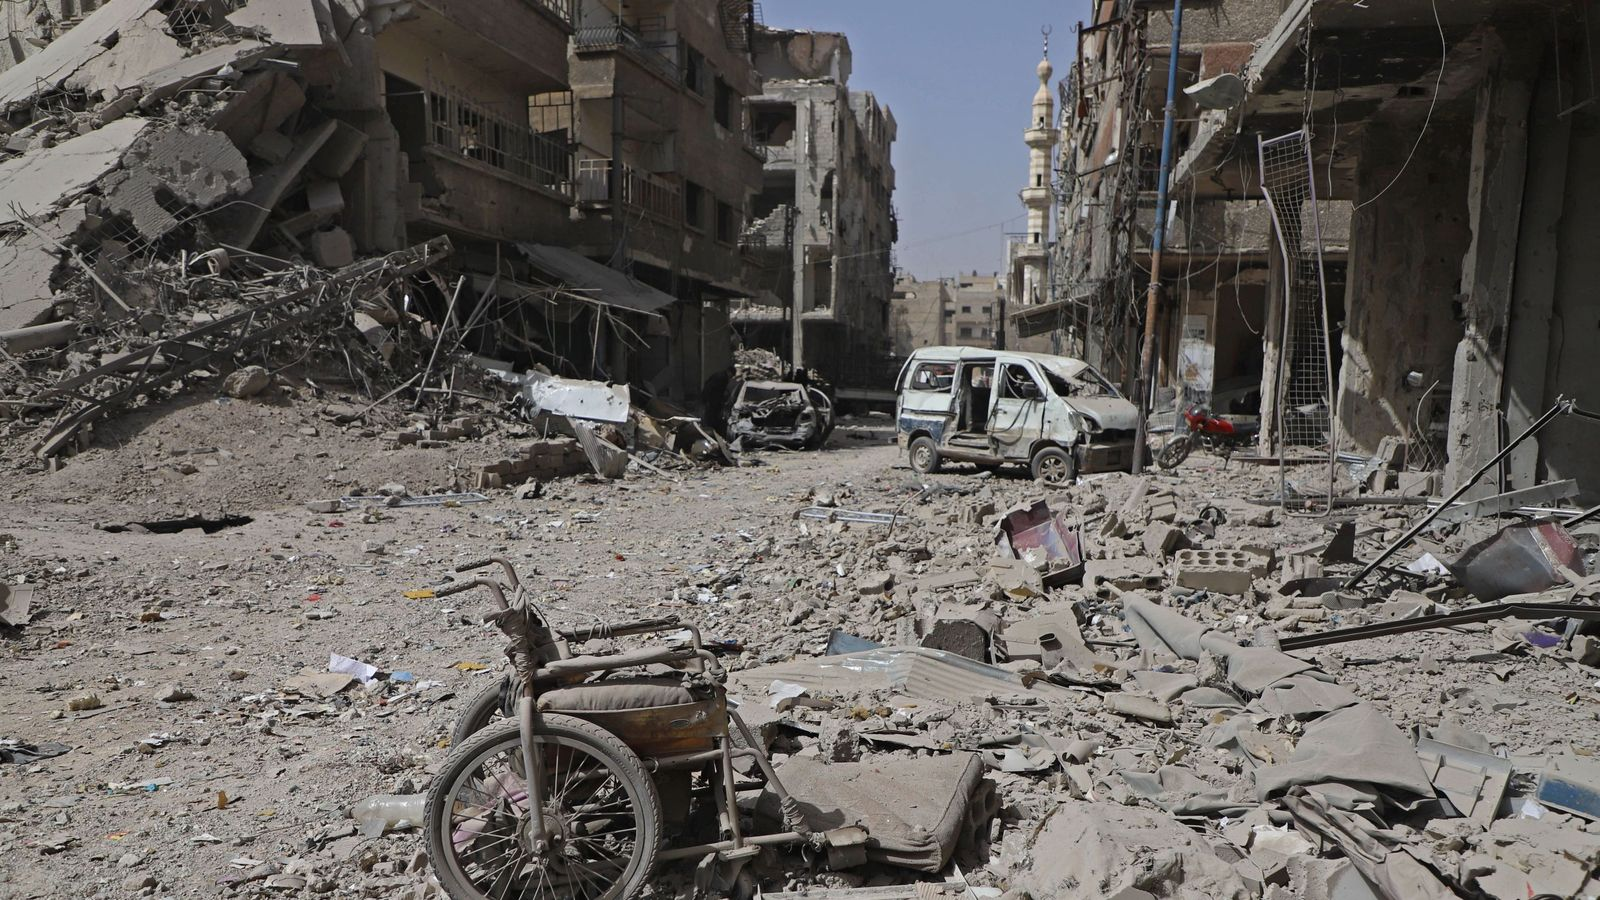 Syria war: Corpses left rotting under rubble in pro-regime attacks on Ghouta, says report